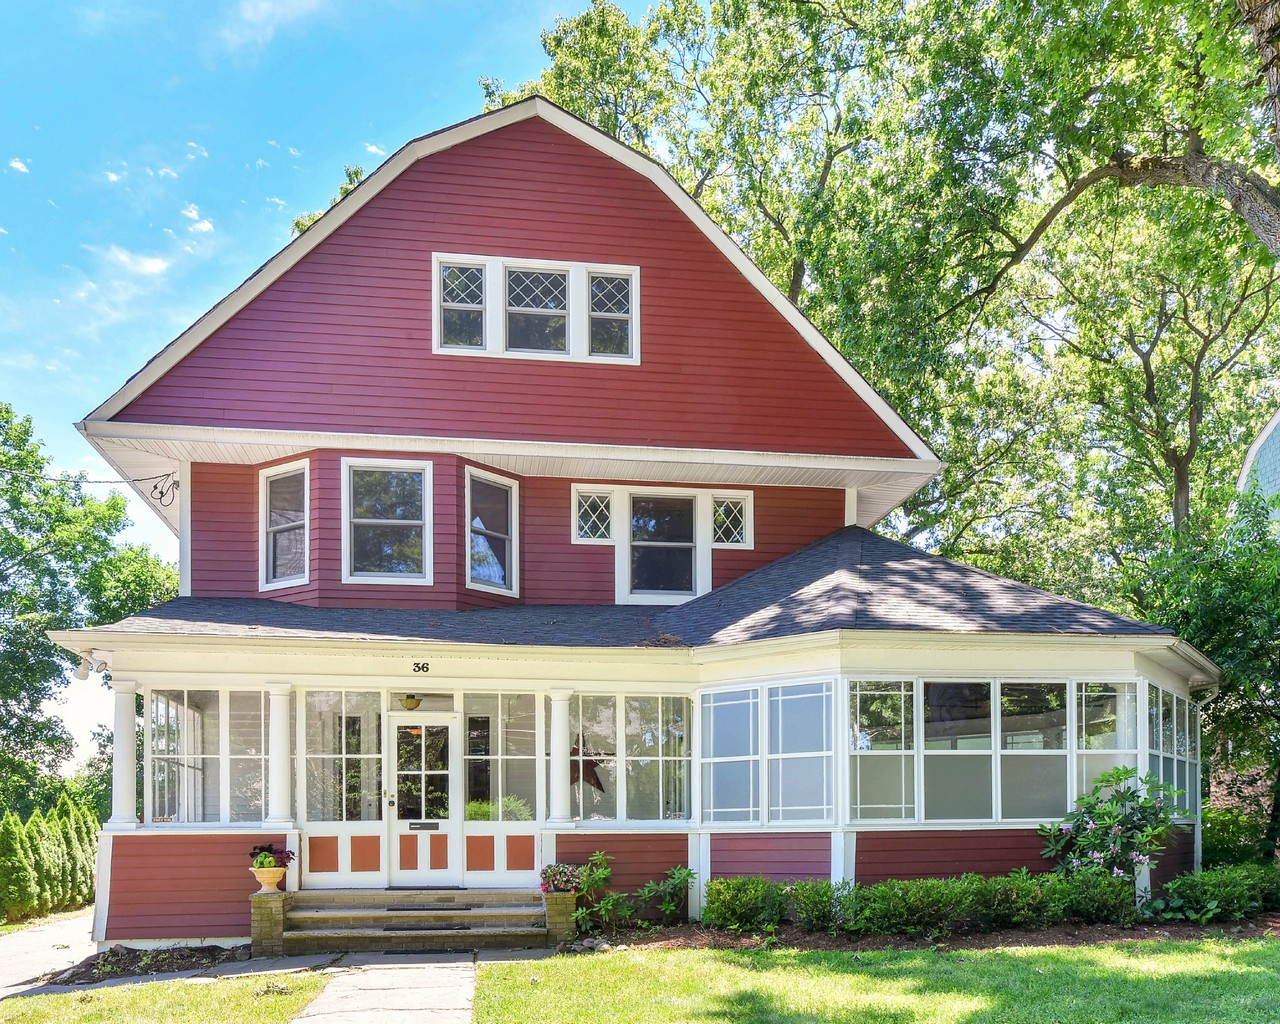 Single Family Home for Rent at Amazing Five Bedroom Victorian 36 Hazelwood Road Bloomfield, 07003 United States